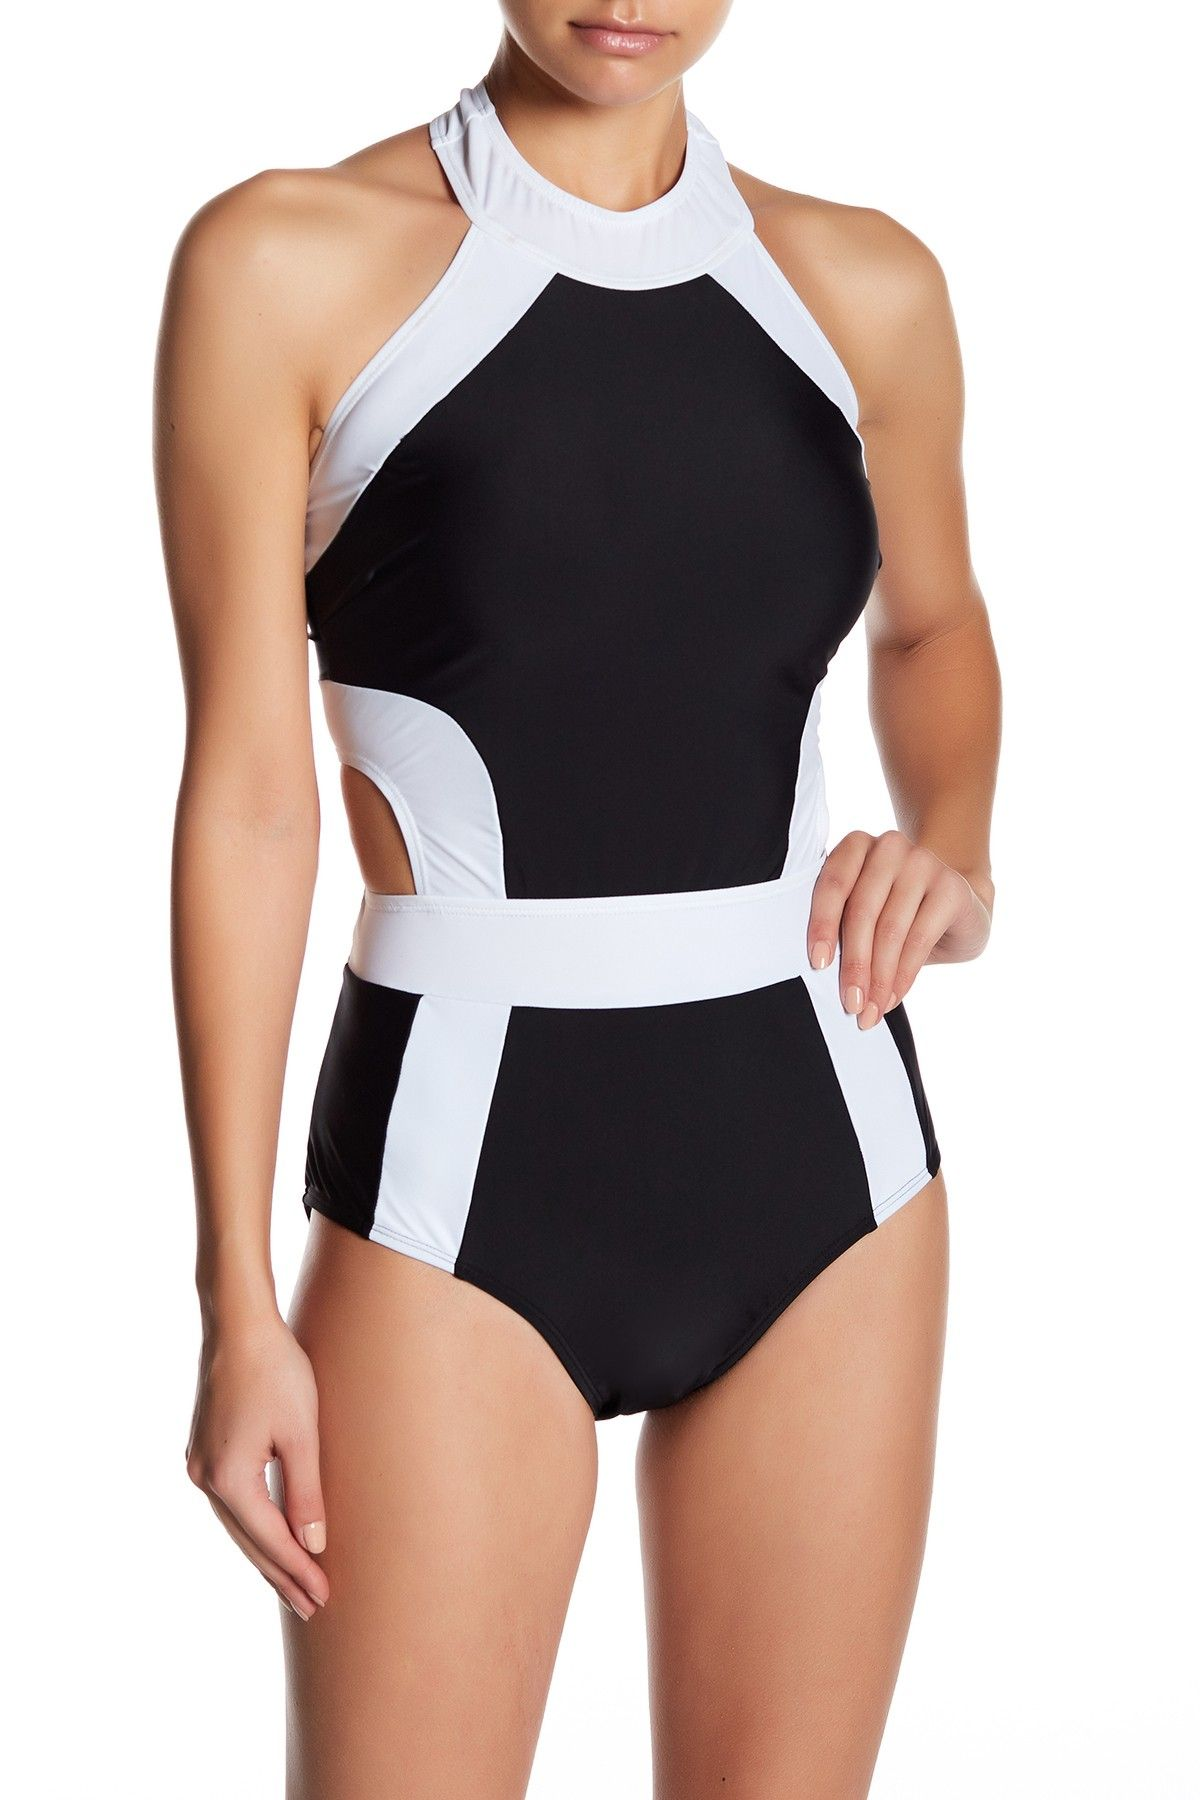 Marilyn Monroe Swim Marilyn Monore Contrast Cutout One Piece Swisuit One Piece High Neck One Piece One Piece Swimsuit